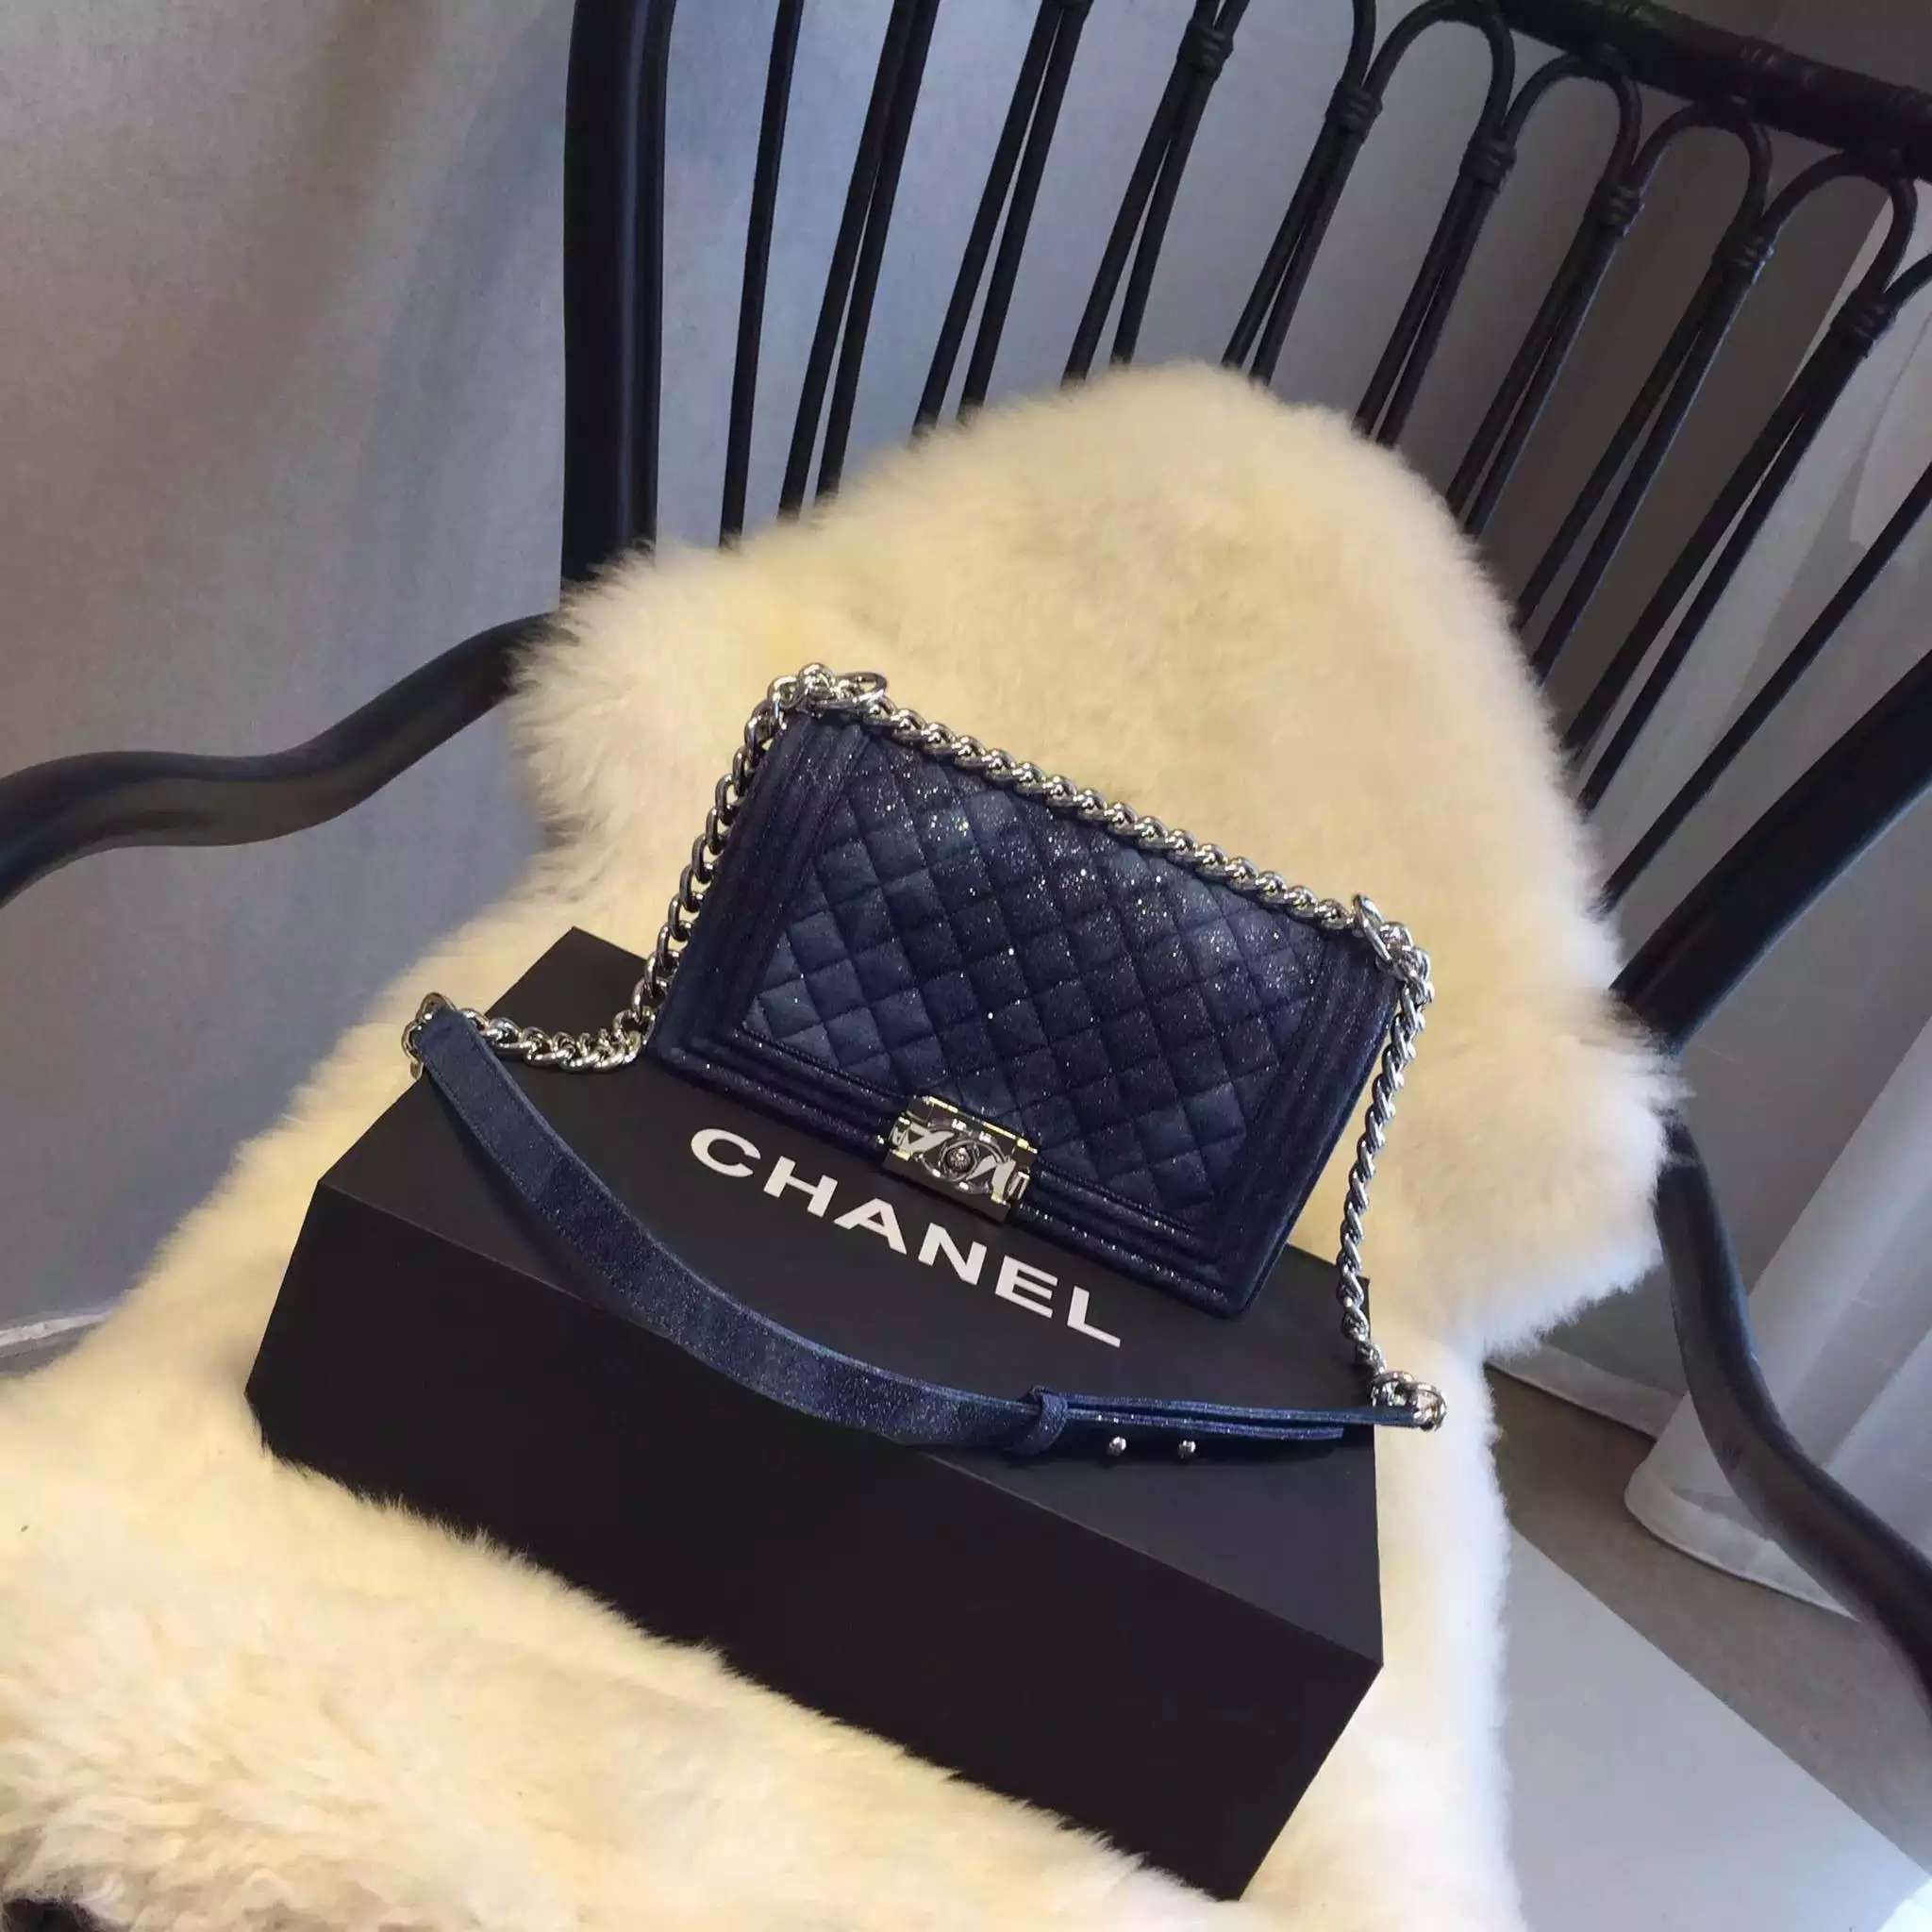 chanel Bag, ID : 31156(FORSALE:a@yybags.com), chanel women's briefcase, chanel retailers, chanel big backpacks, chanel cheap backpacks, chanel online buy, chanel patent leather handbags, chanel mademoiselle bag, chanel ladies bags brands, chanel spring handbags, chanel outlet, chanel spring handbags, chanel outlet store online #chanelBag #chanel #chanel #designer #purse #brands